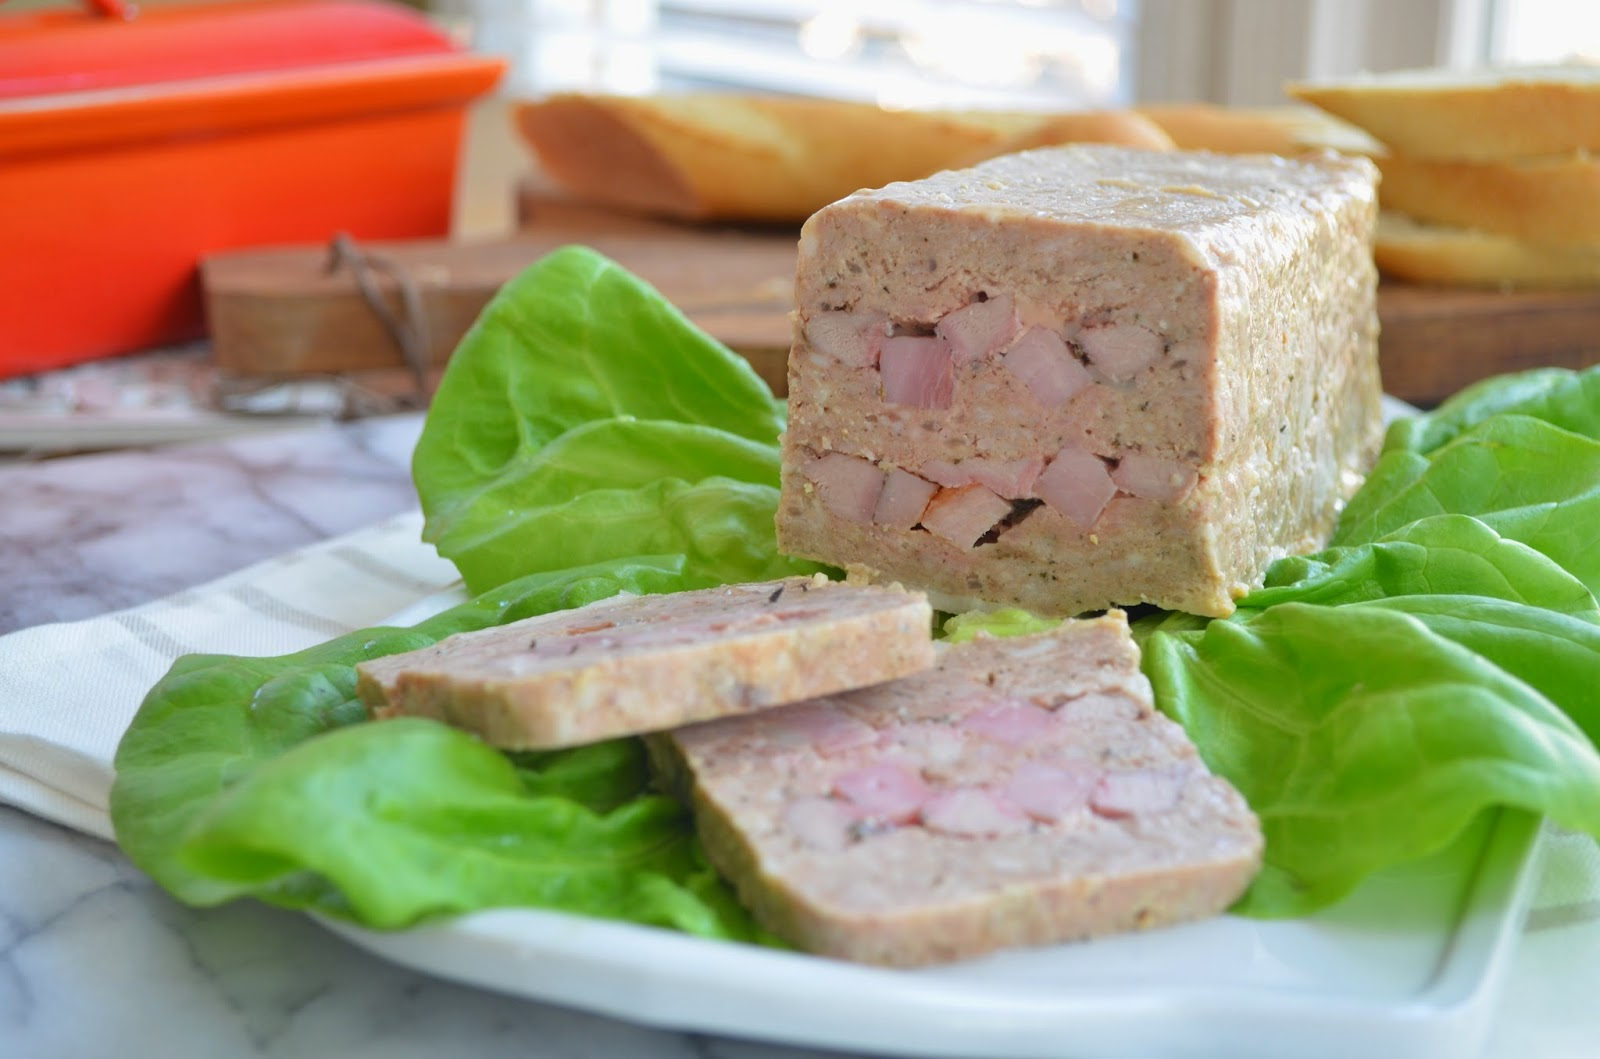 Pork and Veal Pate with Ham - Smell of Rosemary.